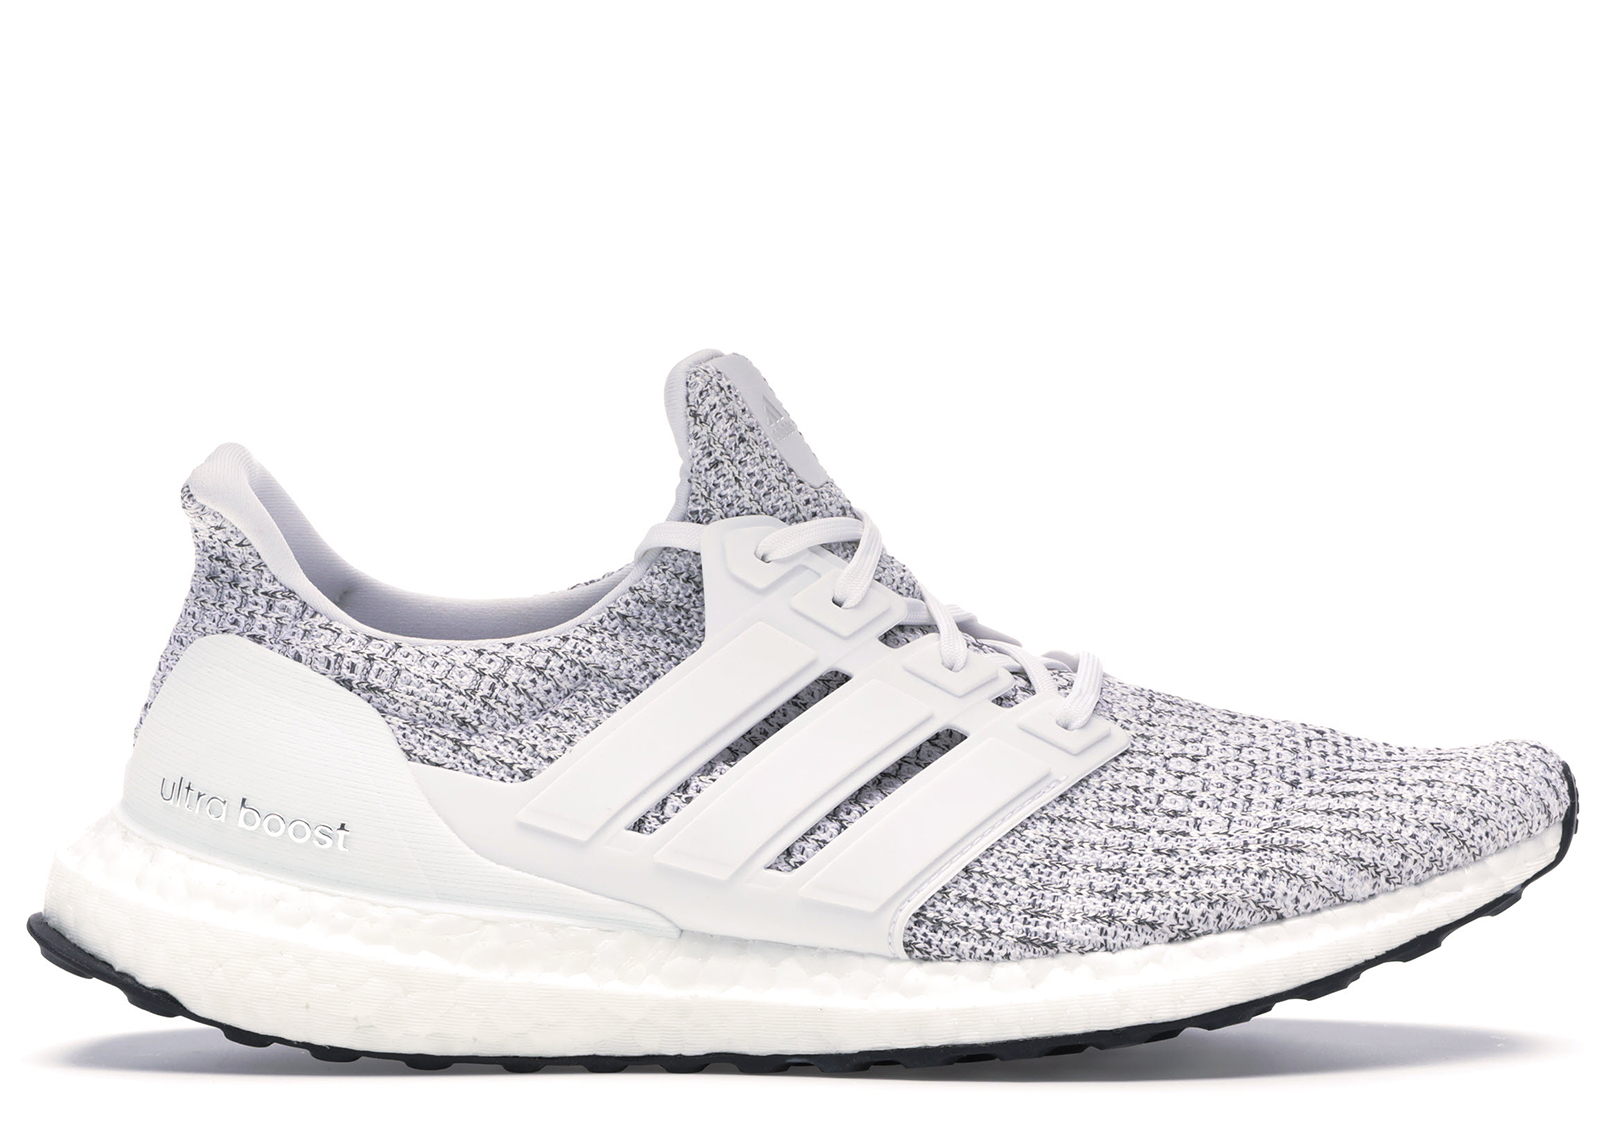 adidas Ultra Boost 4.0 Oreo in 2019 | Adidas sneakers